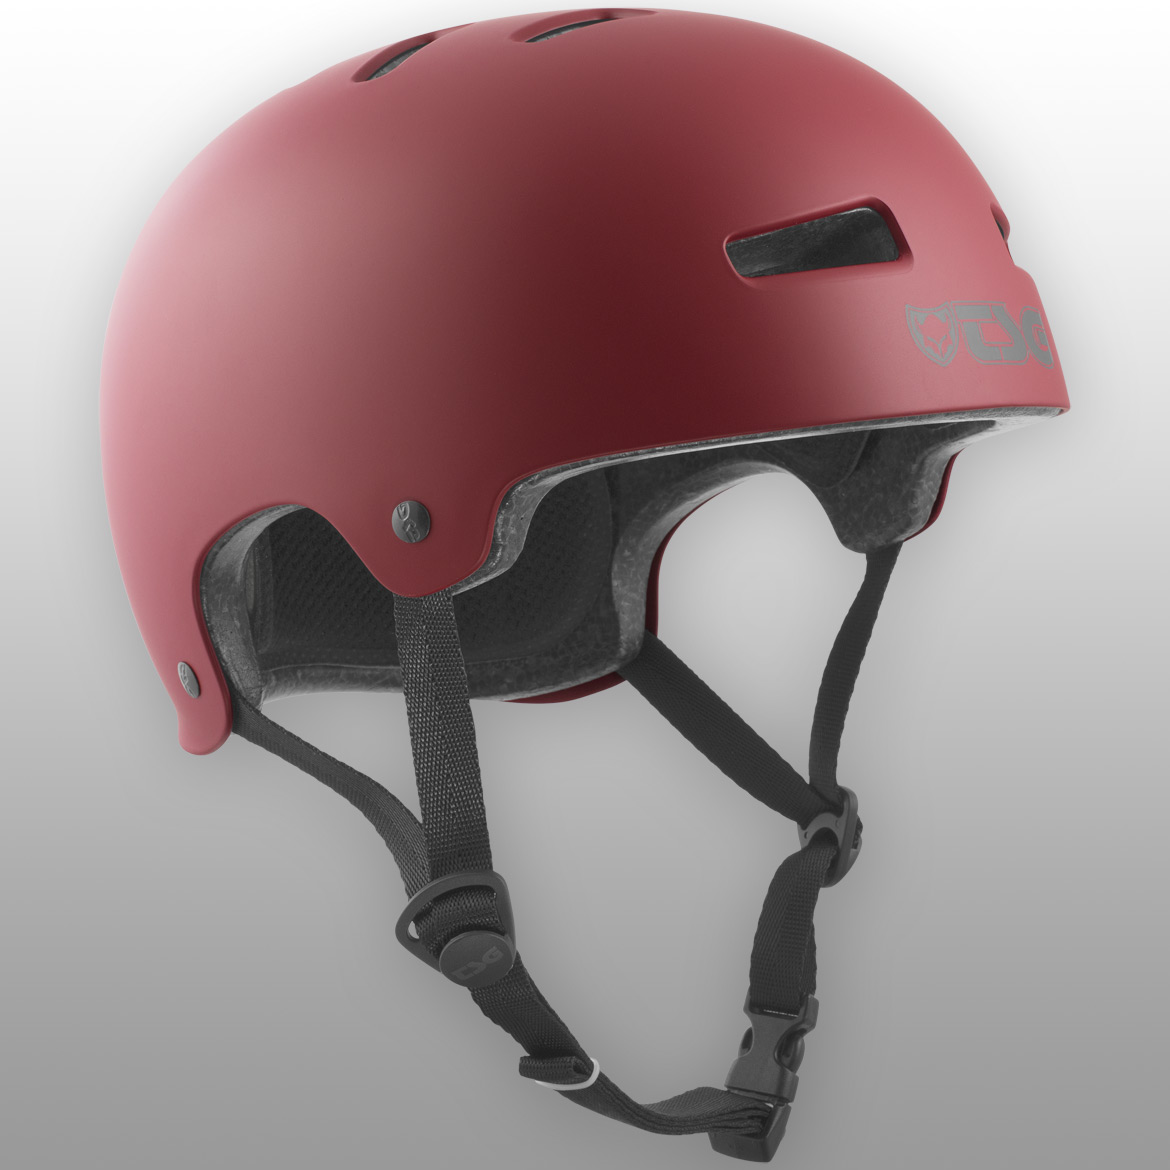 Kask TSG Evolution Solid Color Satin Oxblood